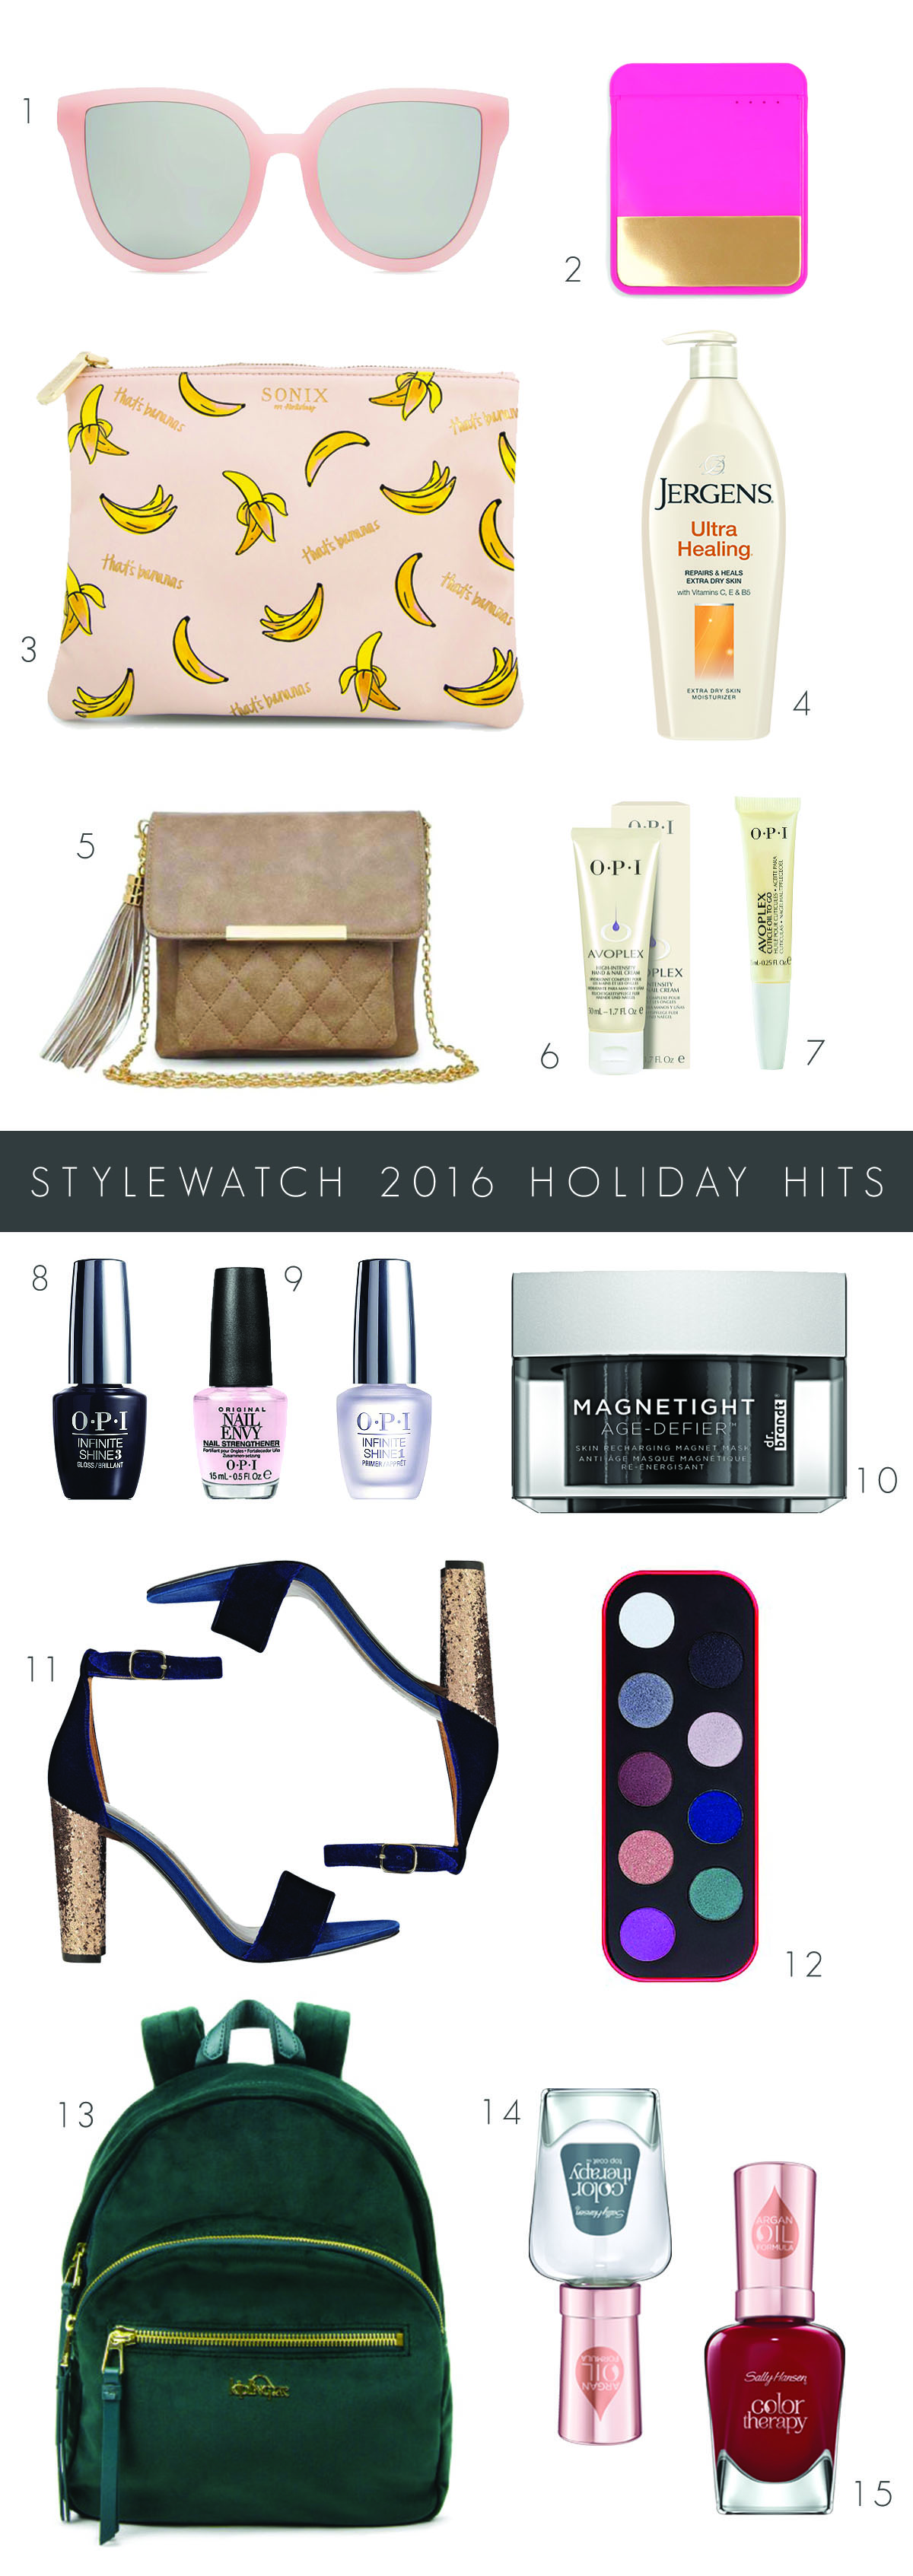 Stylewatch Holiday Hits